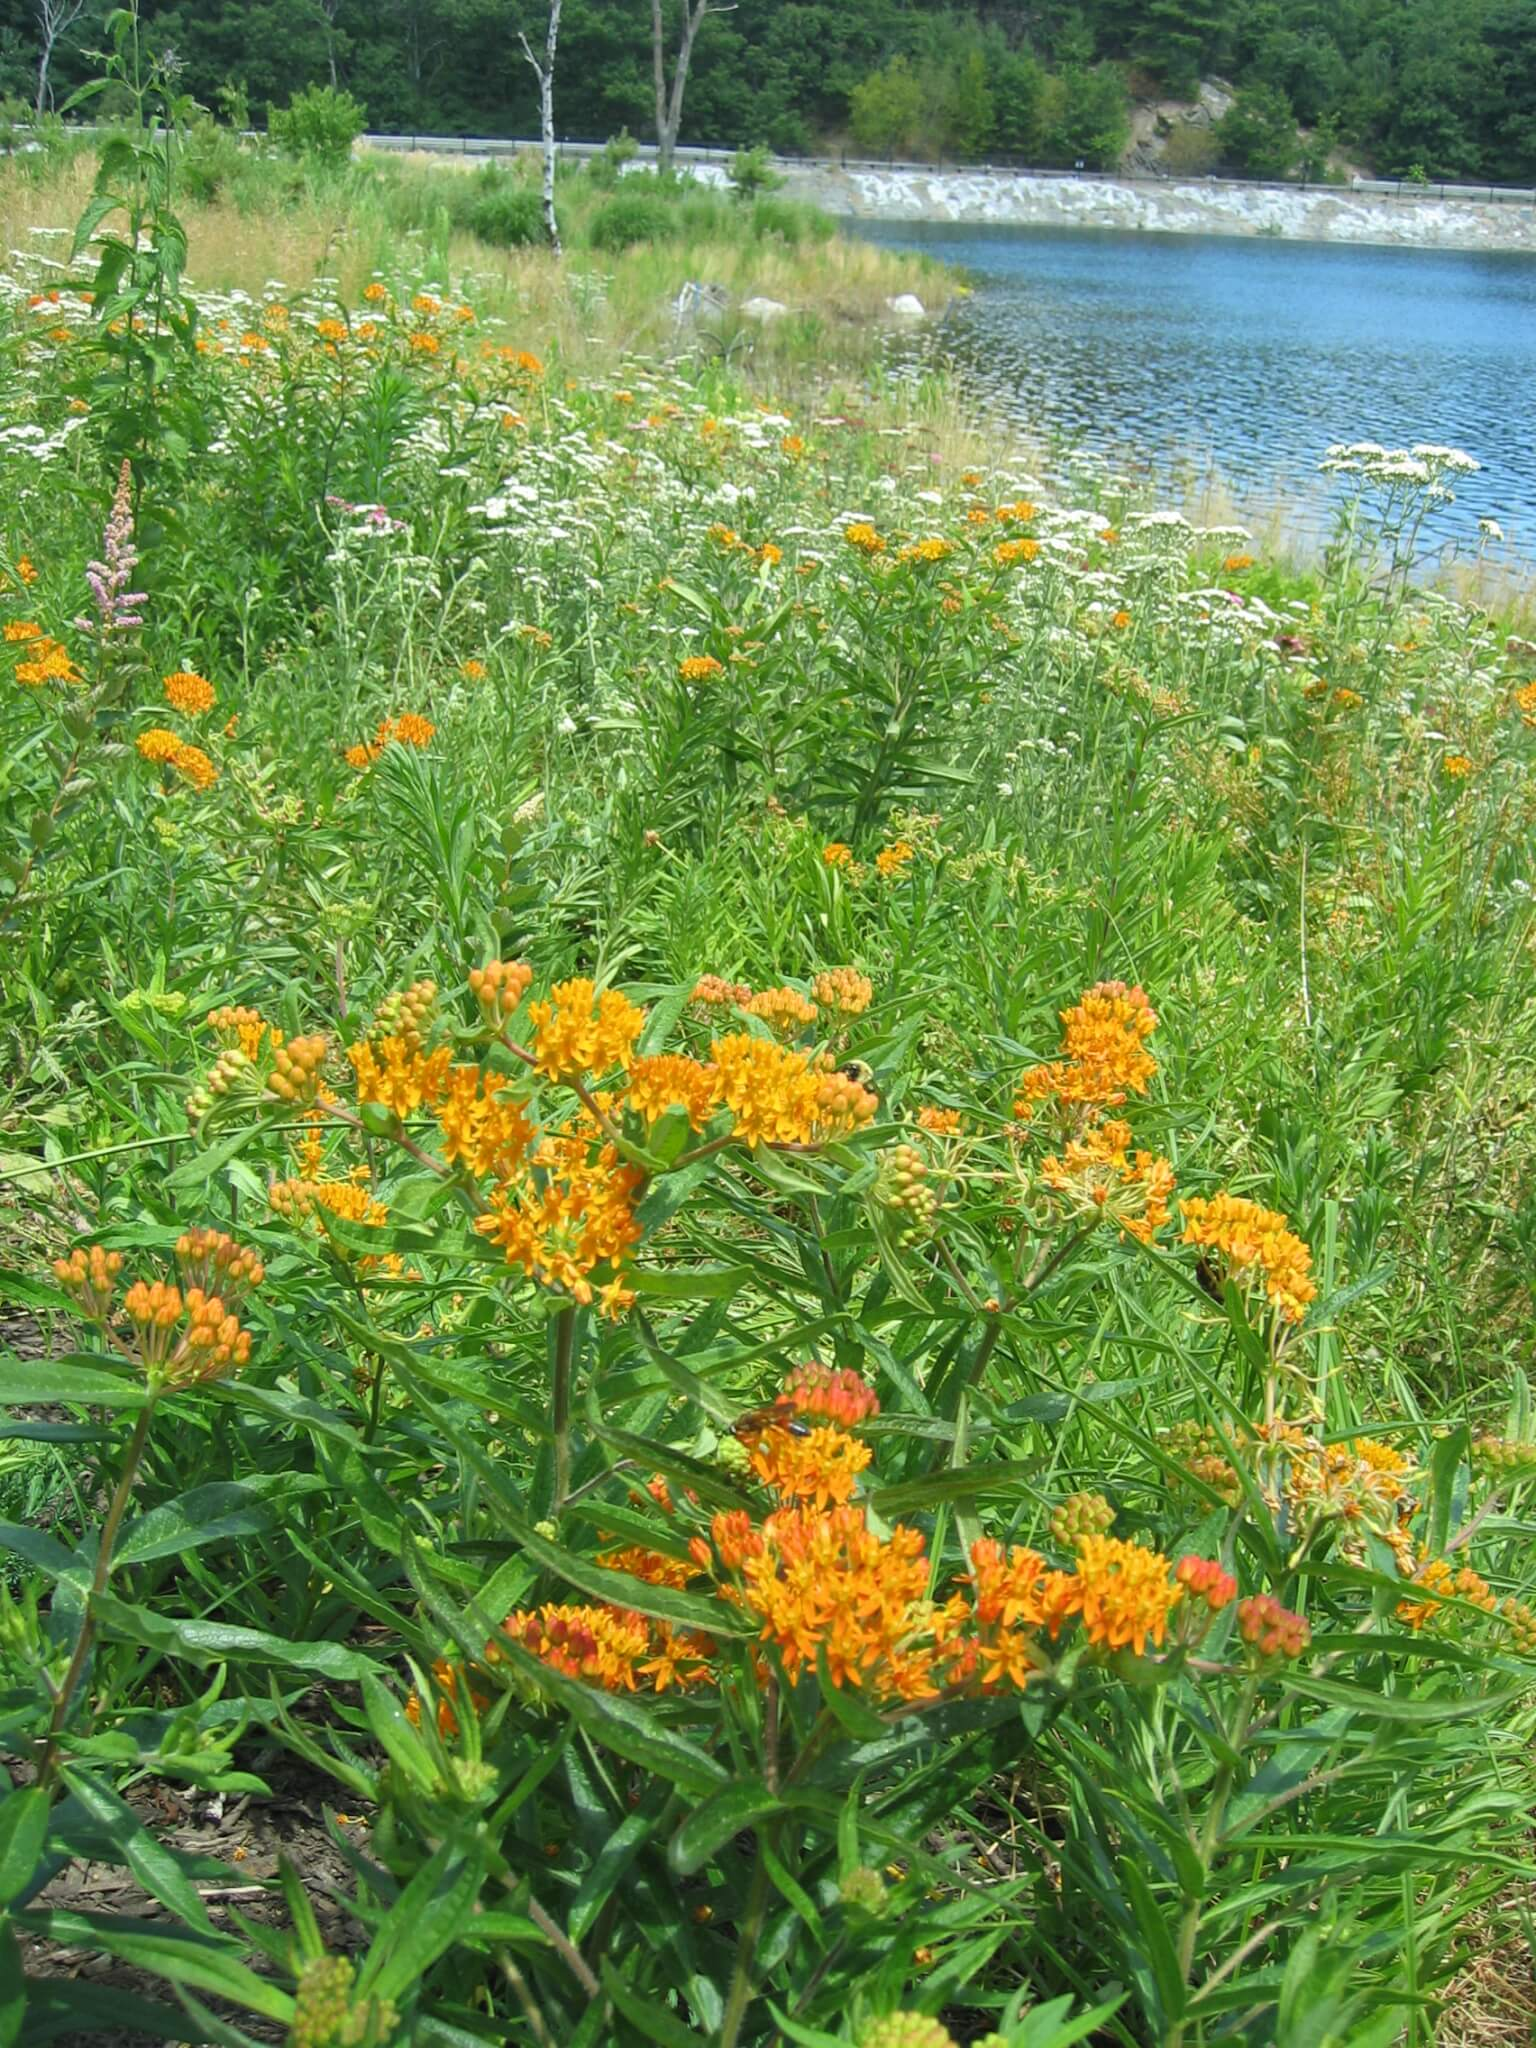 Constructed pond edge naturalizes former hard-armored reservoir edge, restoring native plant communities with species such as Butterflyweed.